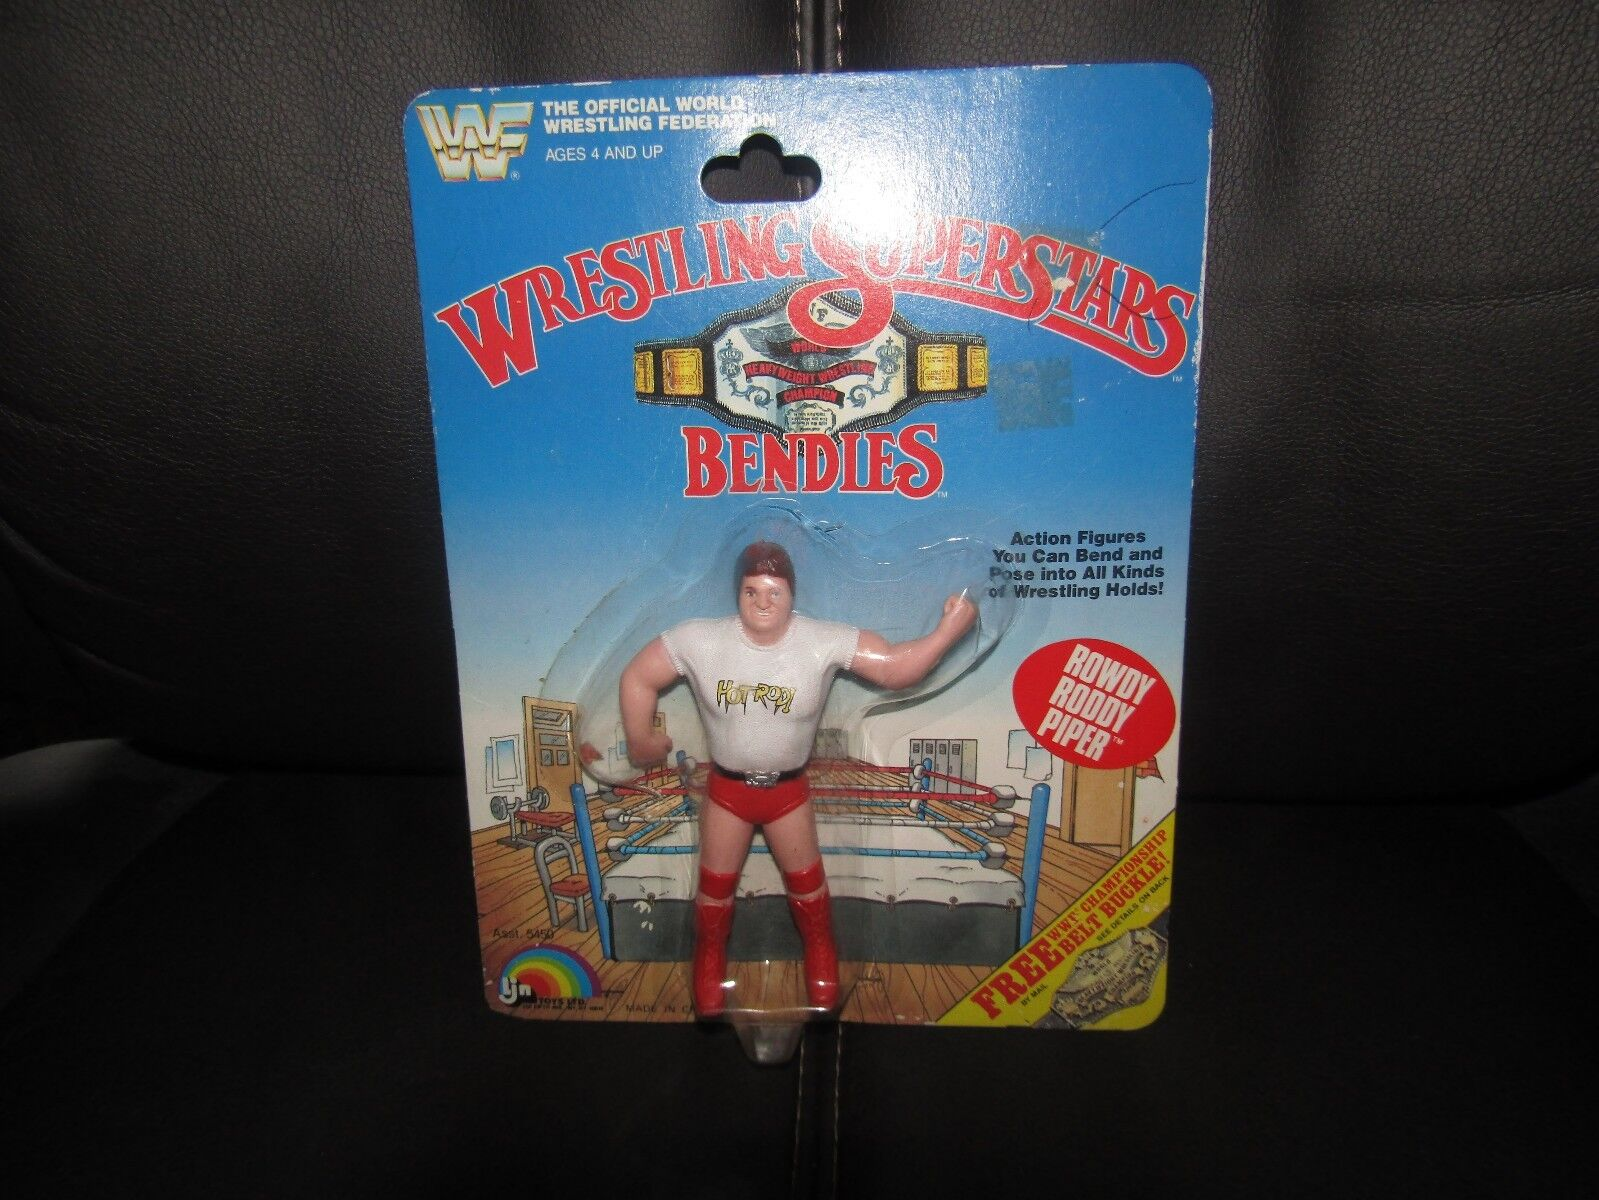 LJN WWF/wwe Wrestlng Superstar BENDIES,Roody Piper, moc. NICE